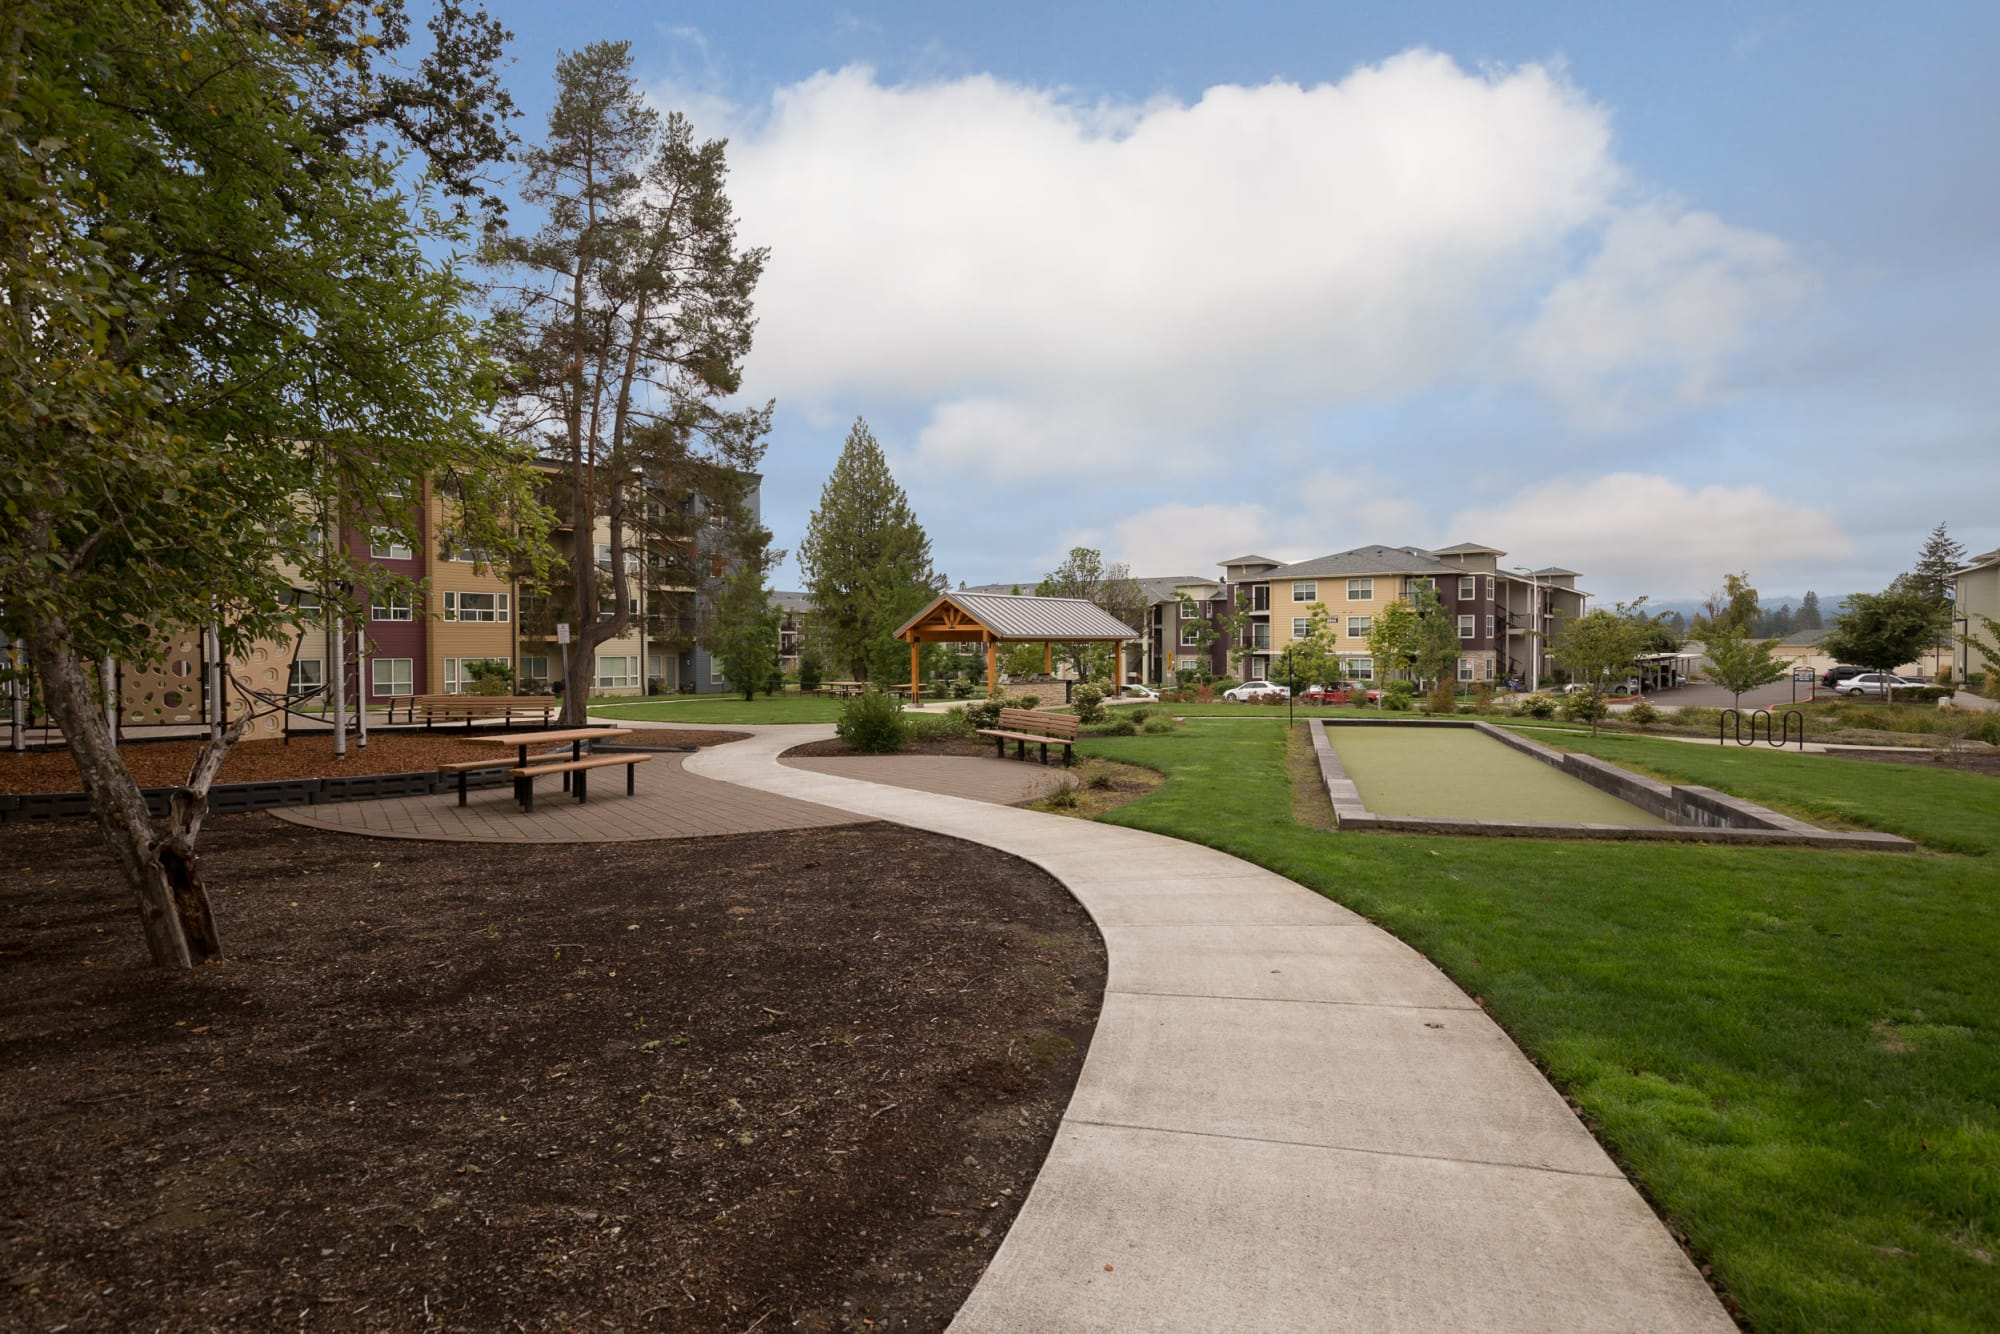 Outdoor Amenity Area with exercise locations, boce ball, open grass and playground at Terrene at the Grove